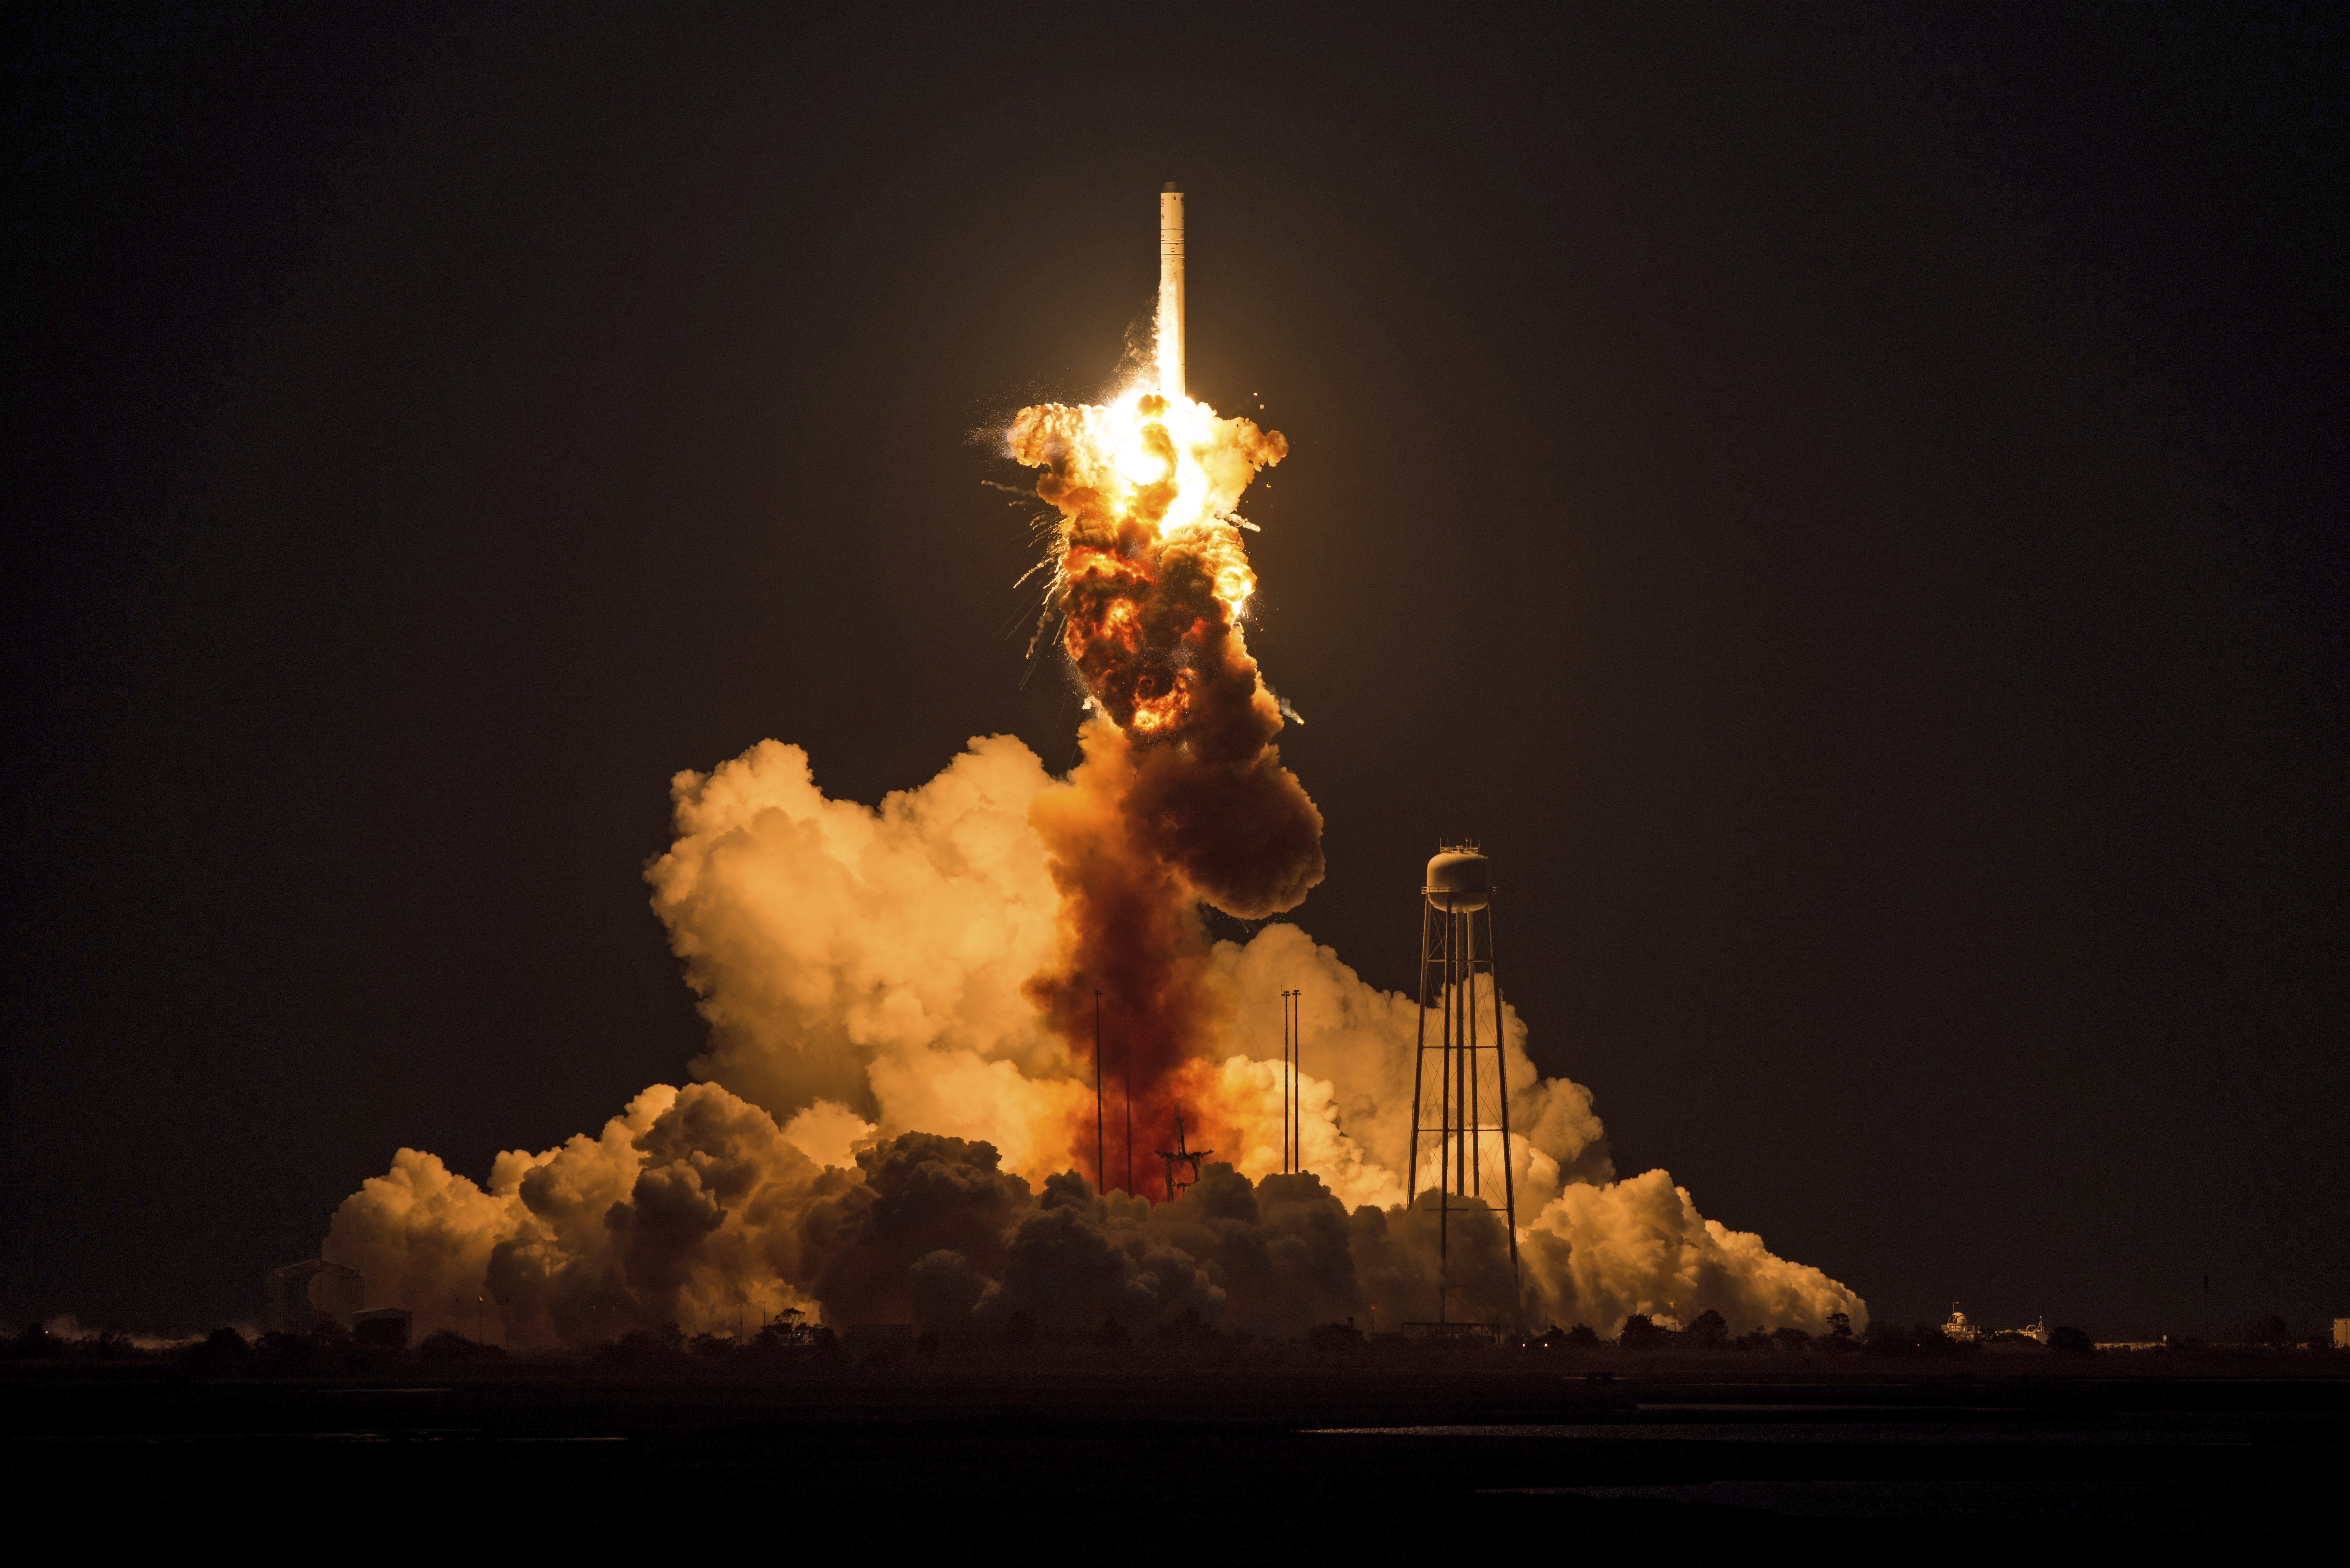 This image provided by NASA shows the Orbital Sciences Corporation Antares rocket, with the Cygnus spacecraft onboard suffers a catastrophic anomaly moments after launch from the Mid-Atlantic Regional Spaceport Pad 0A, Tuesday, Oct. 28, 2014, at NASA's Wallops Flight Facility in Virginia.